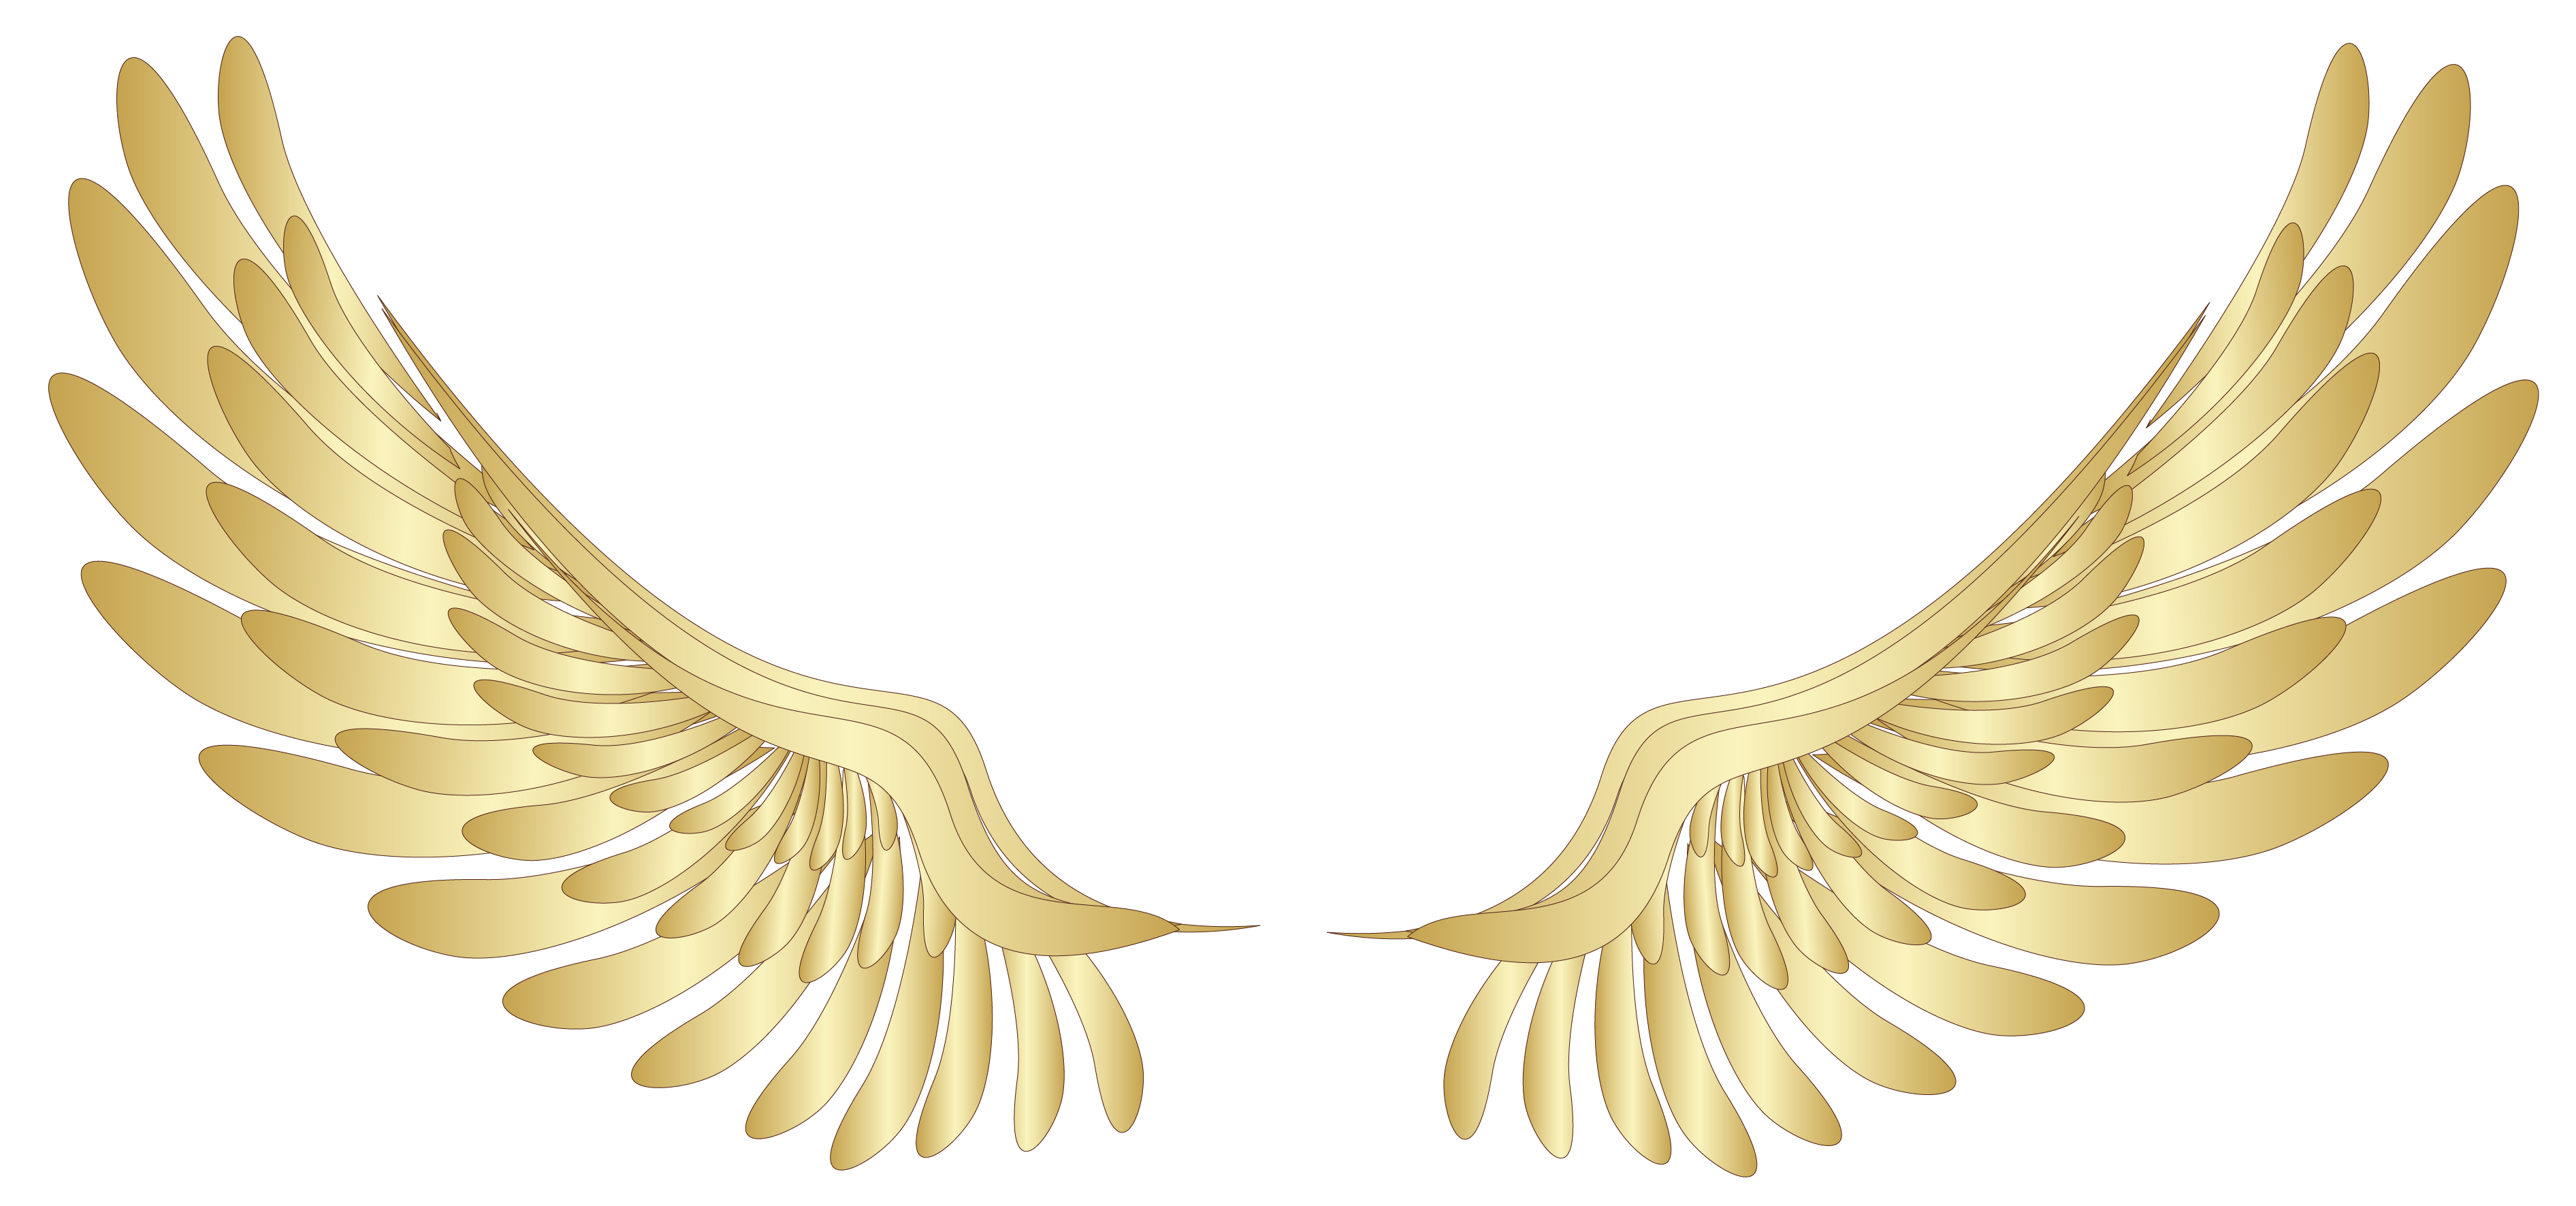 Gold angel wings png. Golden decor clipart picture